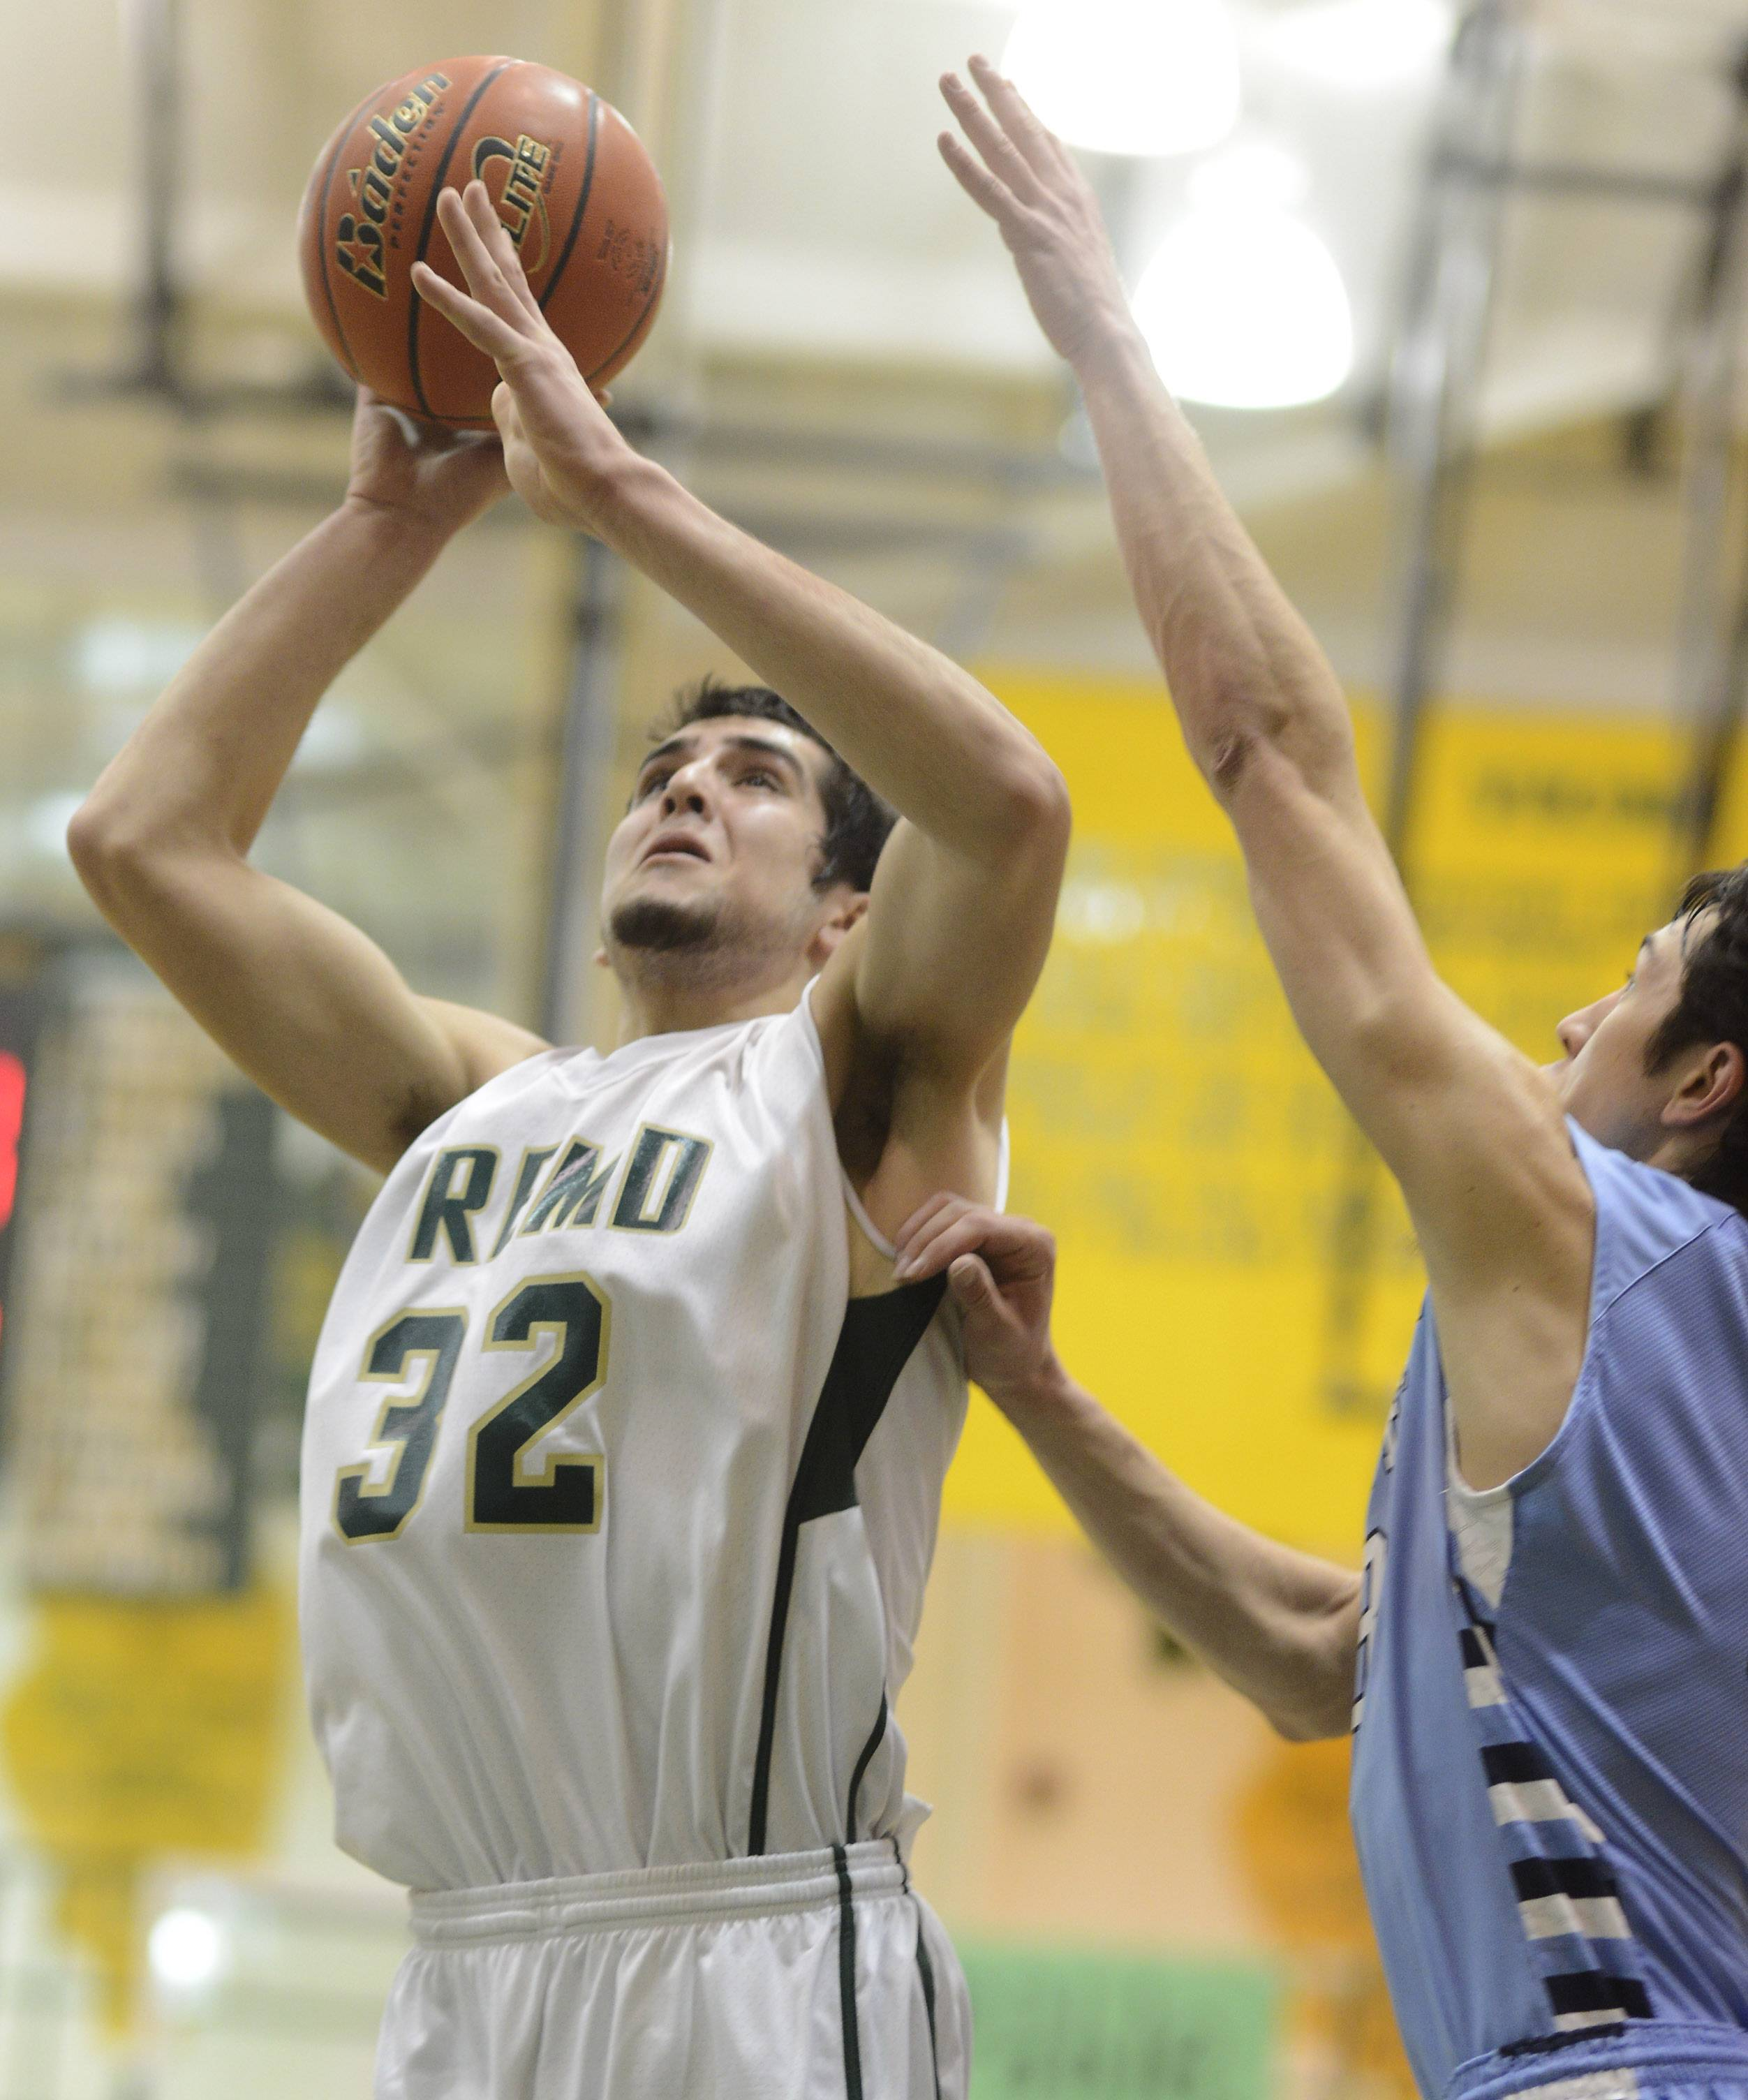 Fremd's Matthew Ochoa shoots while being guarded by Prospect's Bobby Frasco .